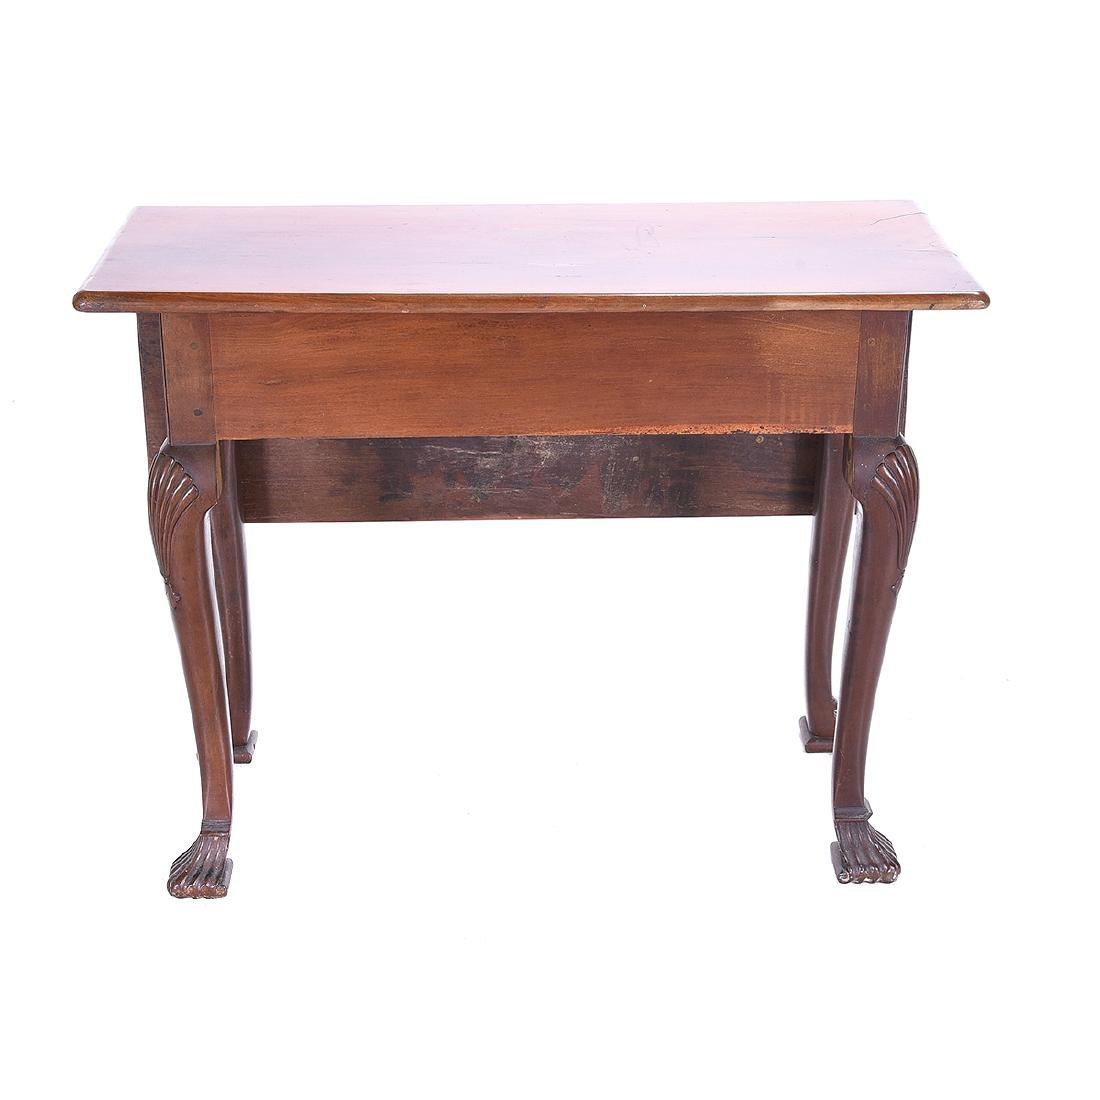 Chippendale Drop Leaf Table - 4